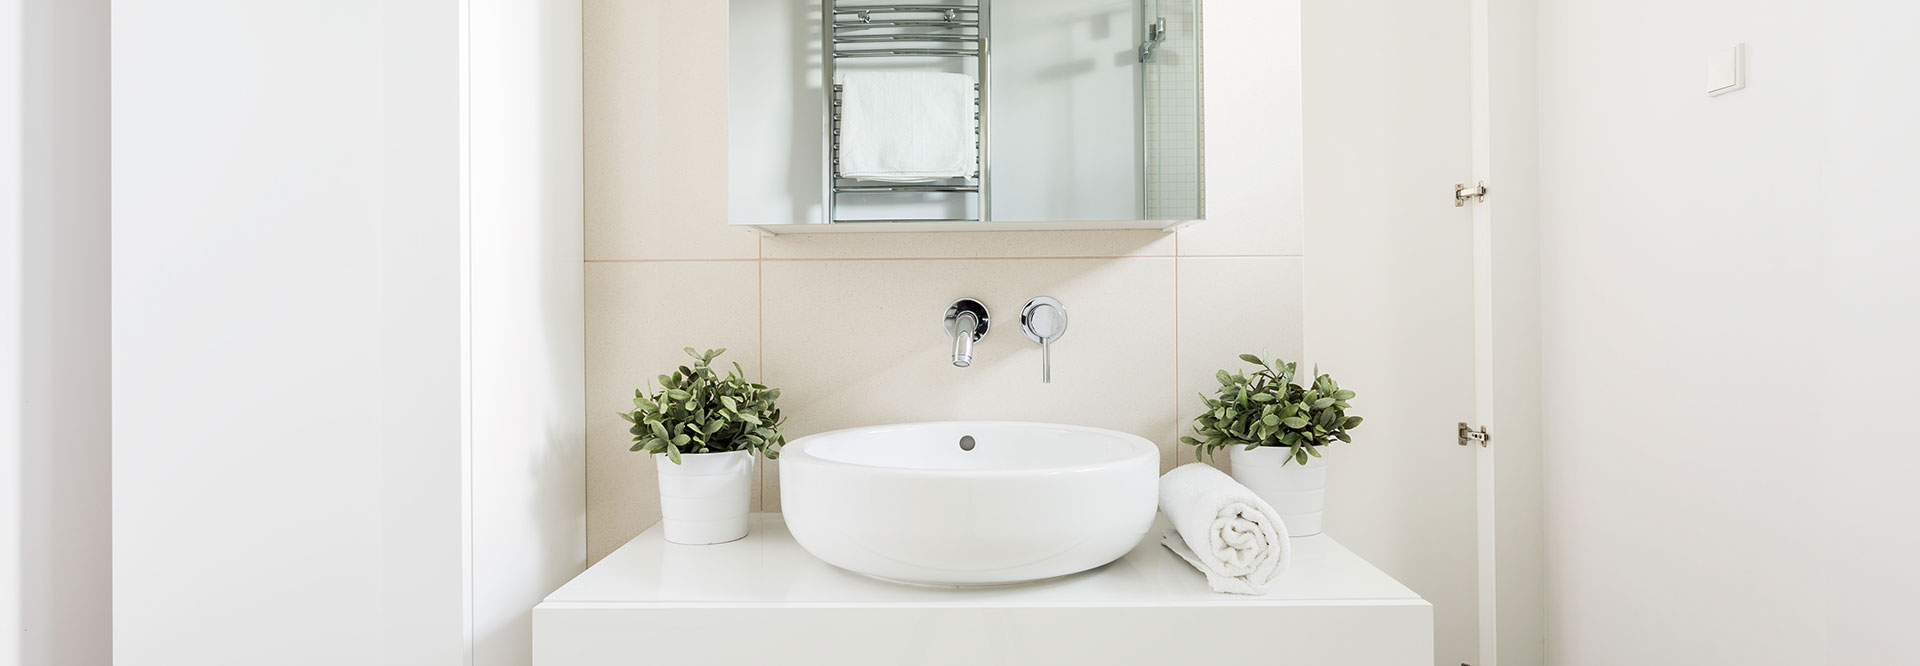 Bathroom Renovations & Selling Your Home